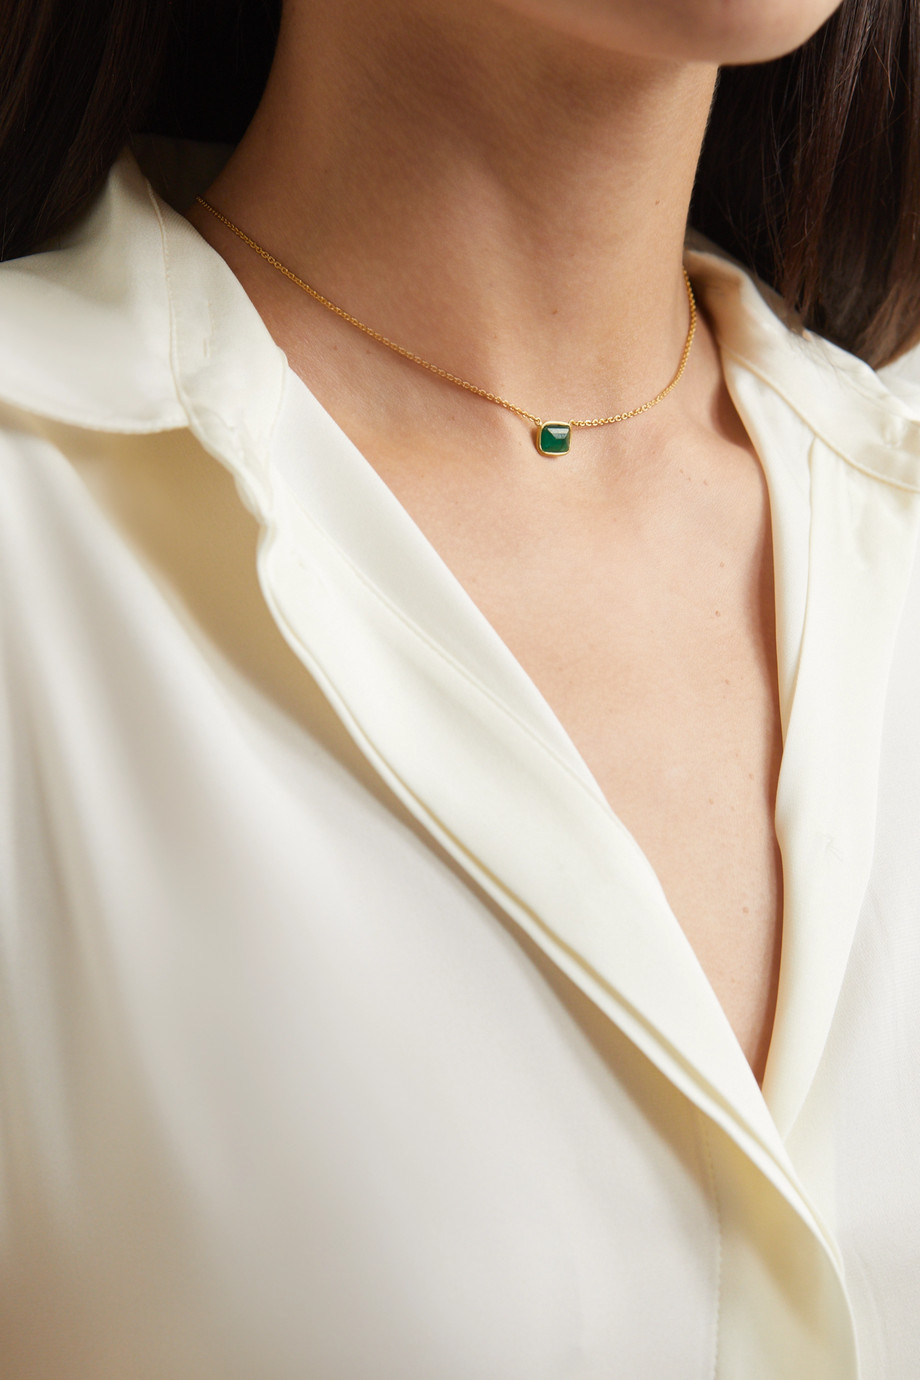 PIPPA SMALL 18-karat gold emerald necklace